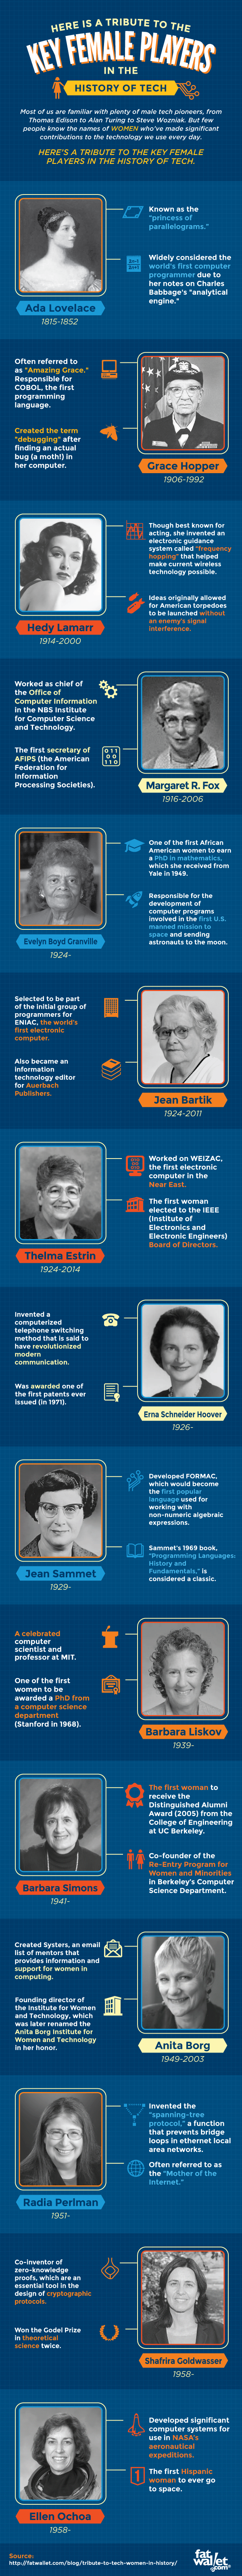 Tribute To Key Female Players In Technology